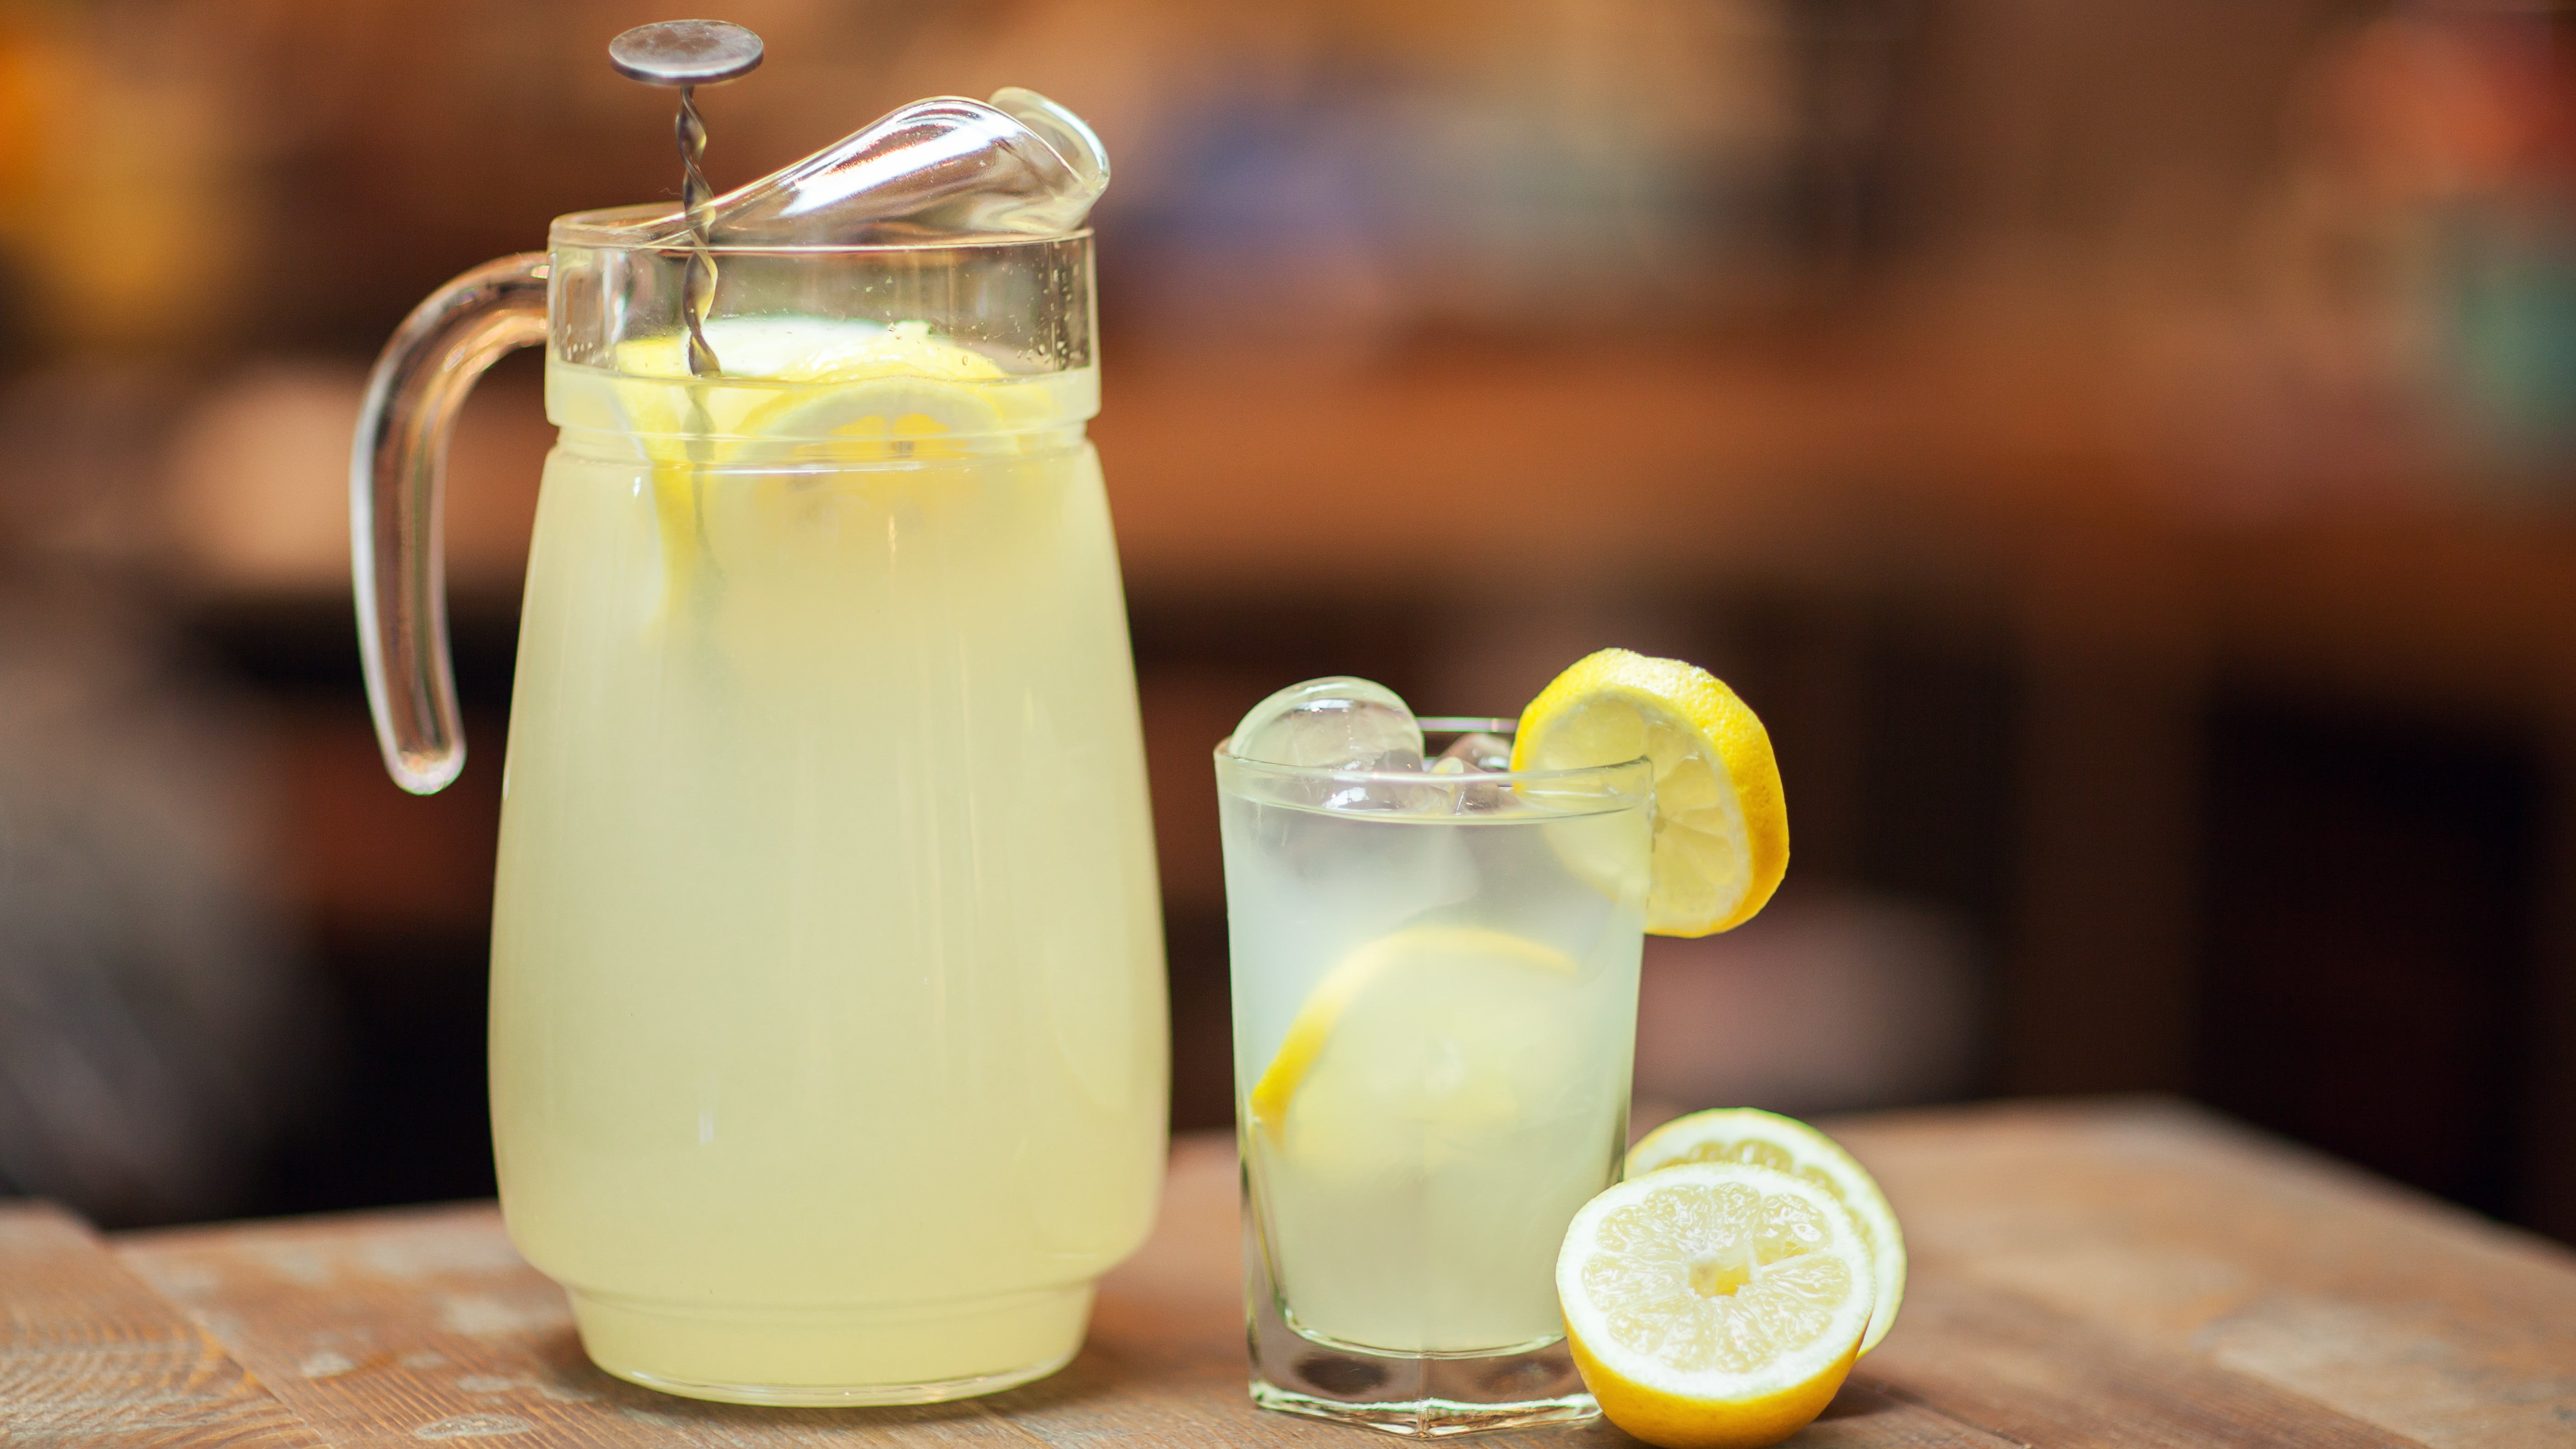 Liven Up Your Lemonade With Sushi Ginger Brine